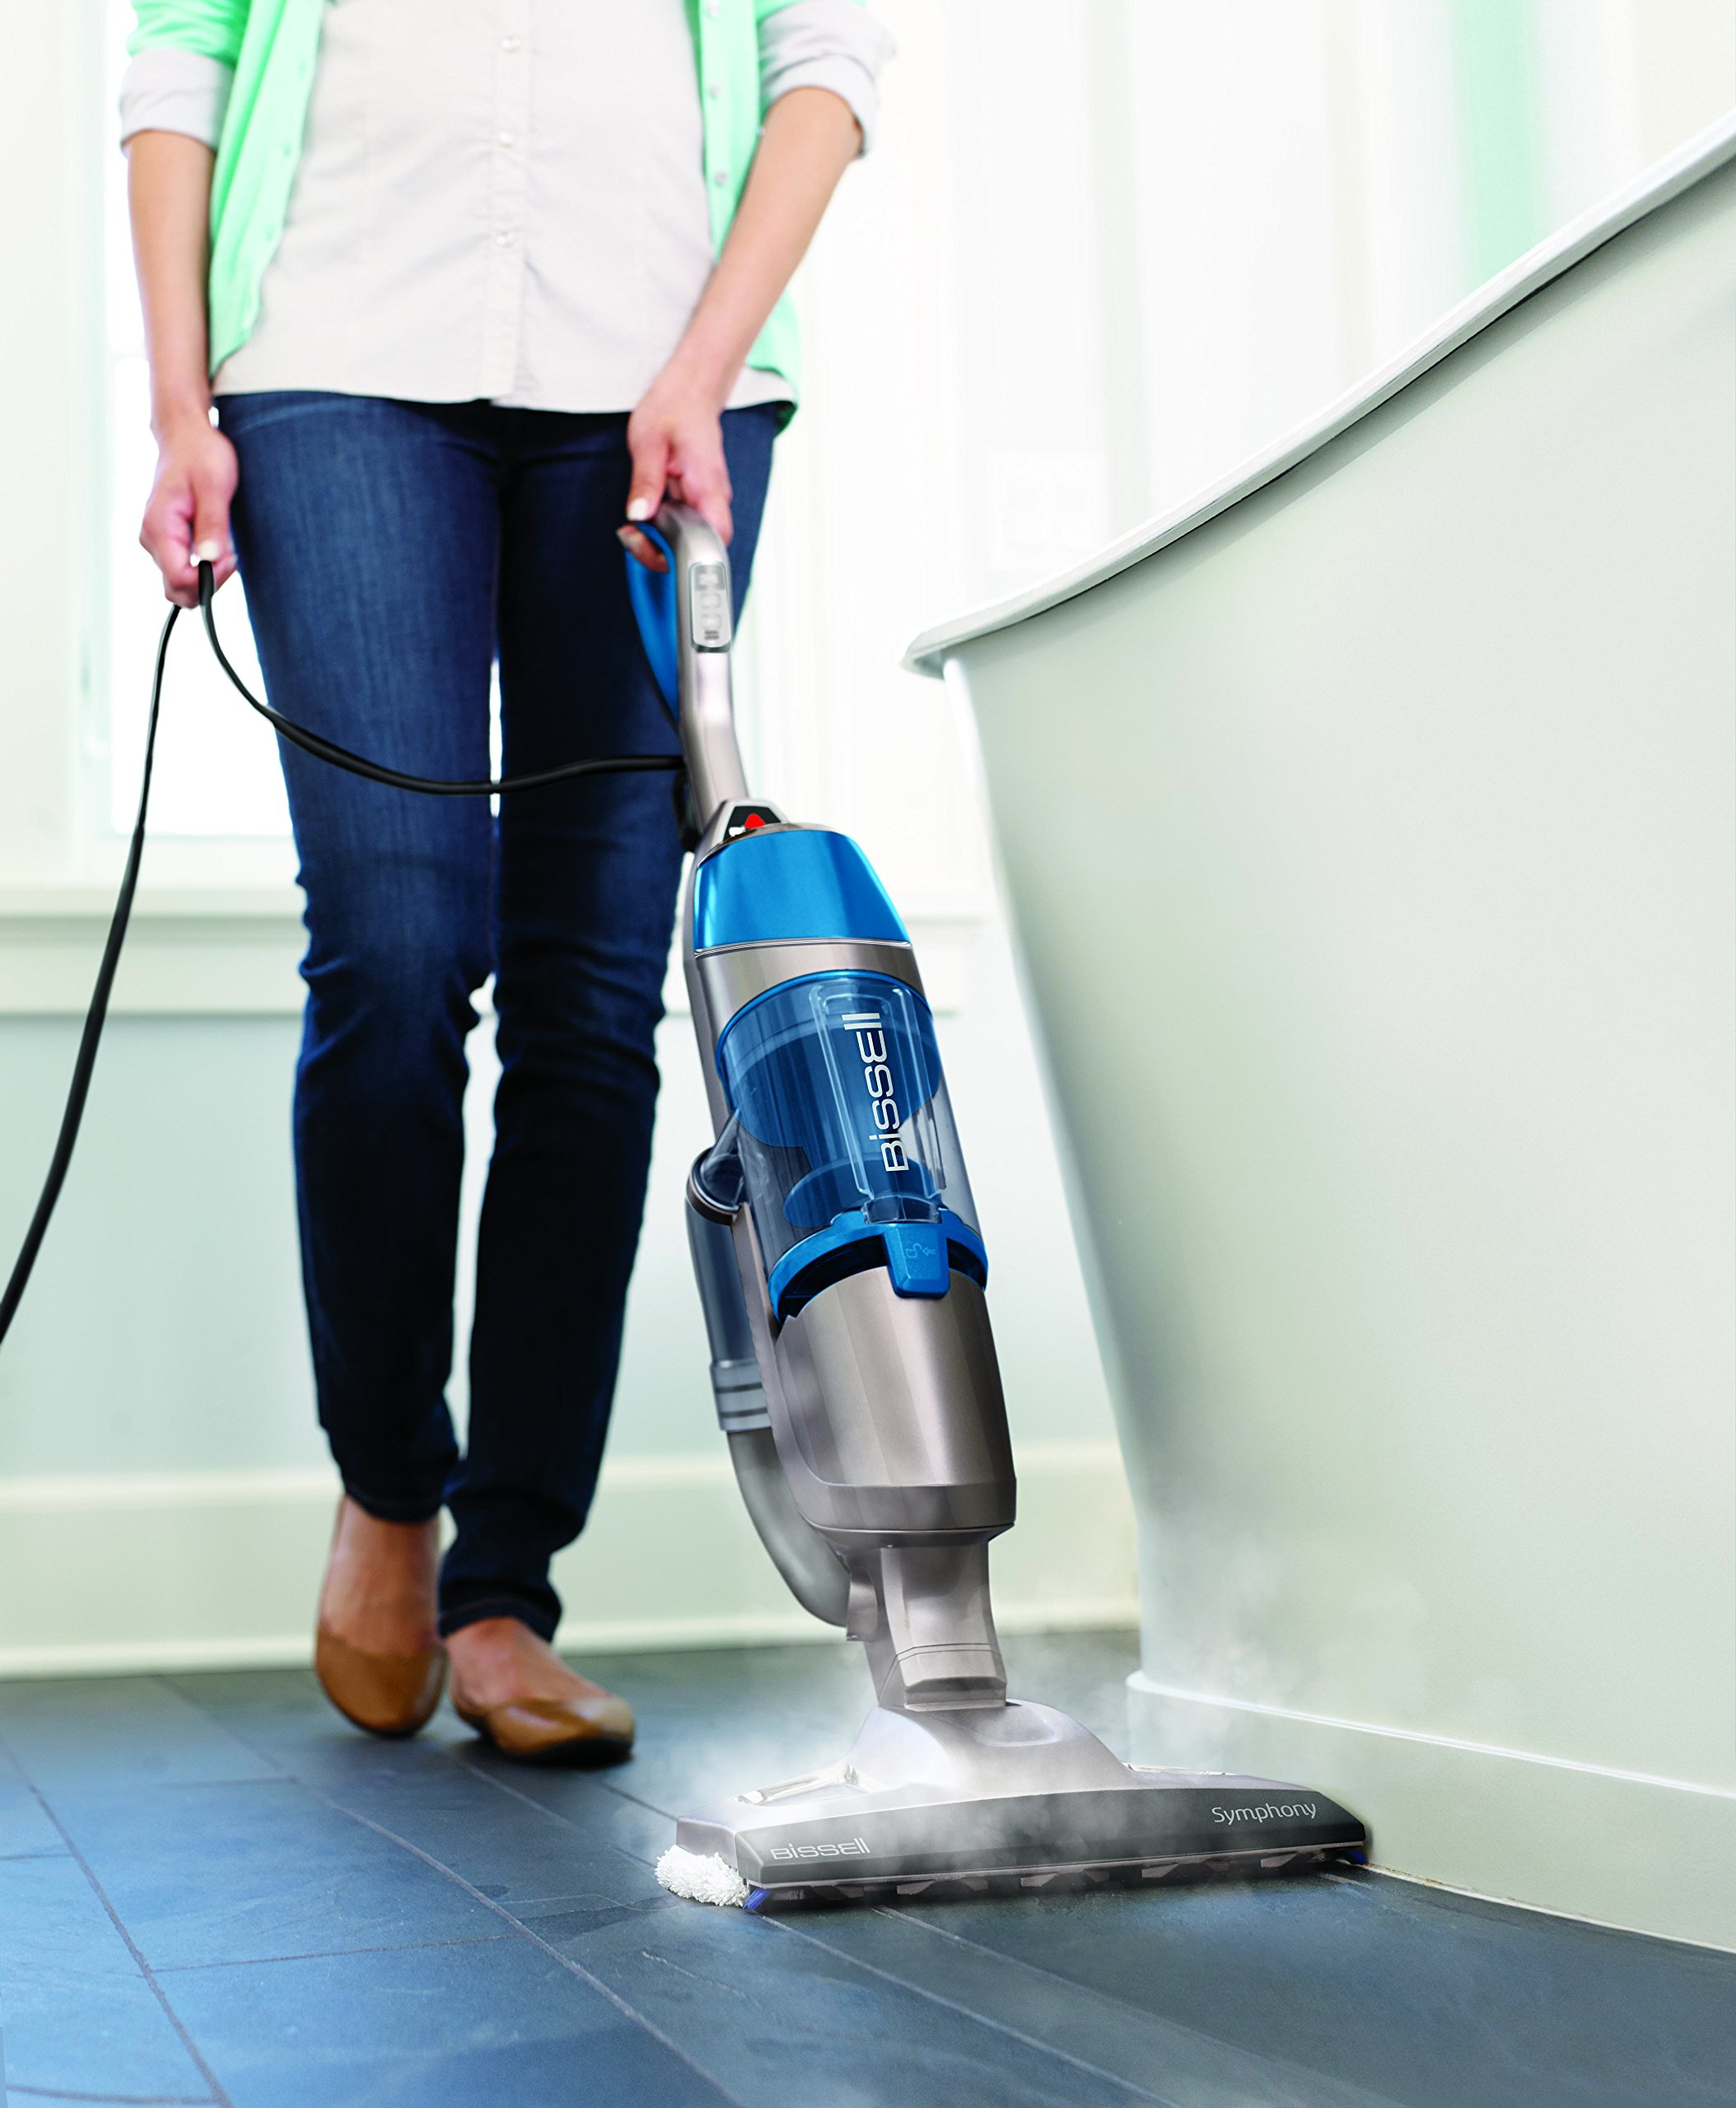 Bissell Symphony Steam Mop and Steam Vacuum for Hardwood and Tile Floors, 4 Mop Pads Included, 1132A by Bissell (Image #5)